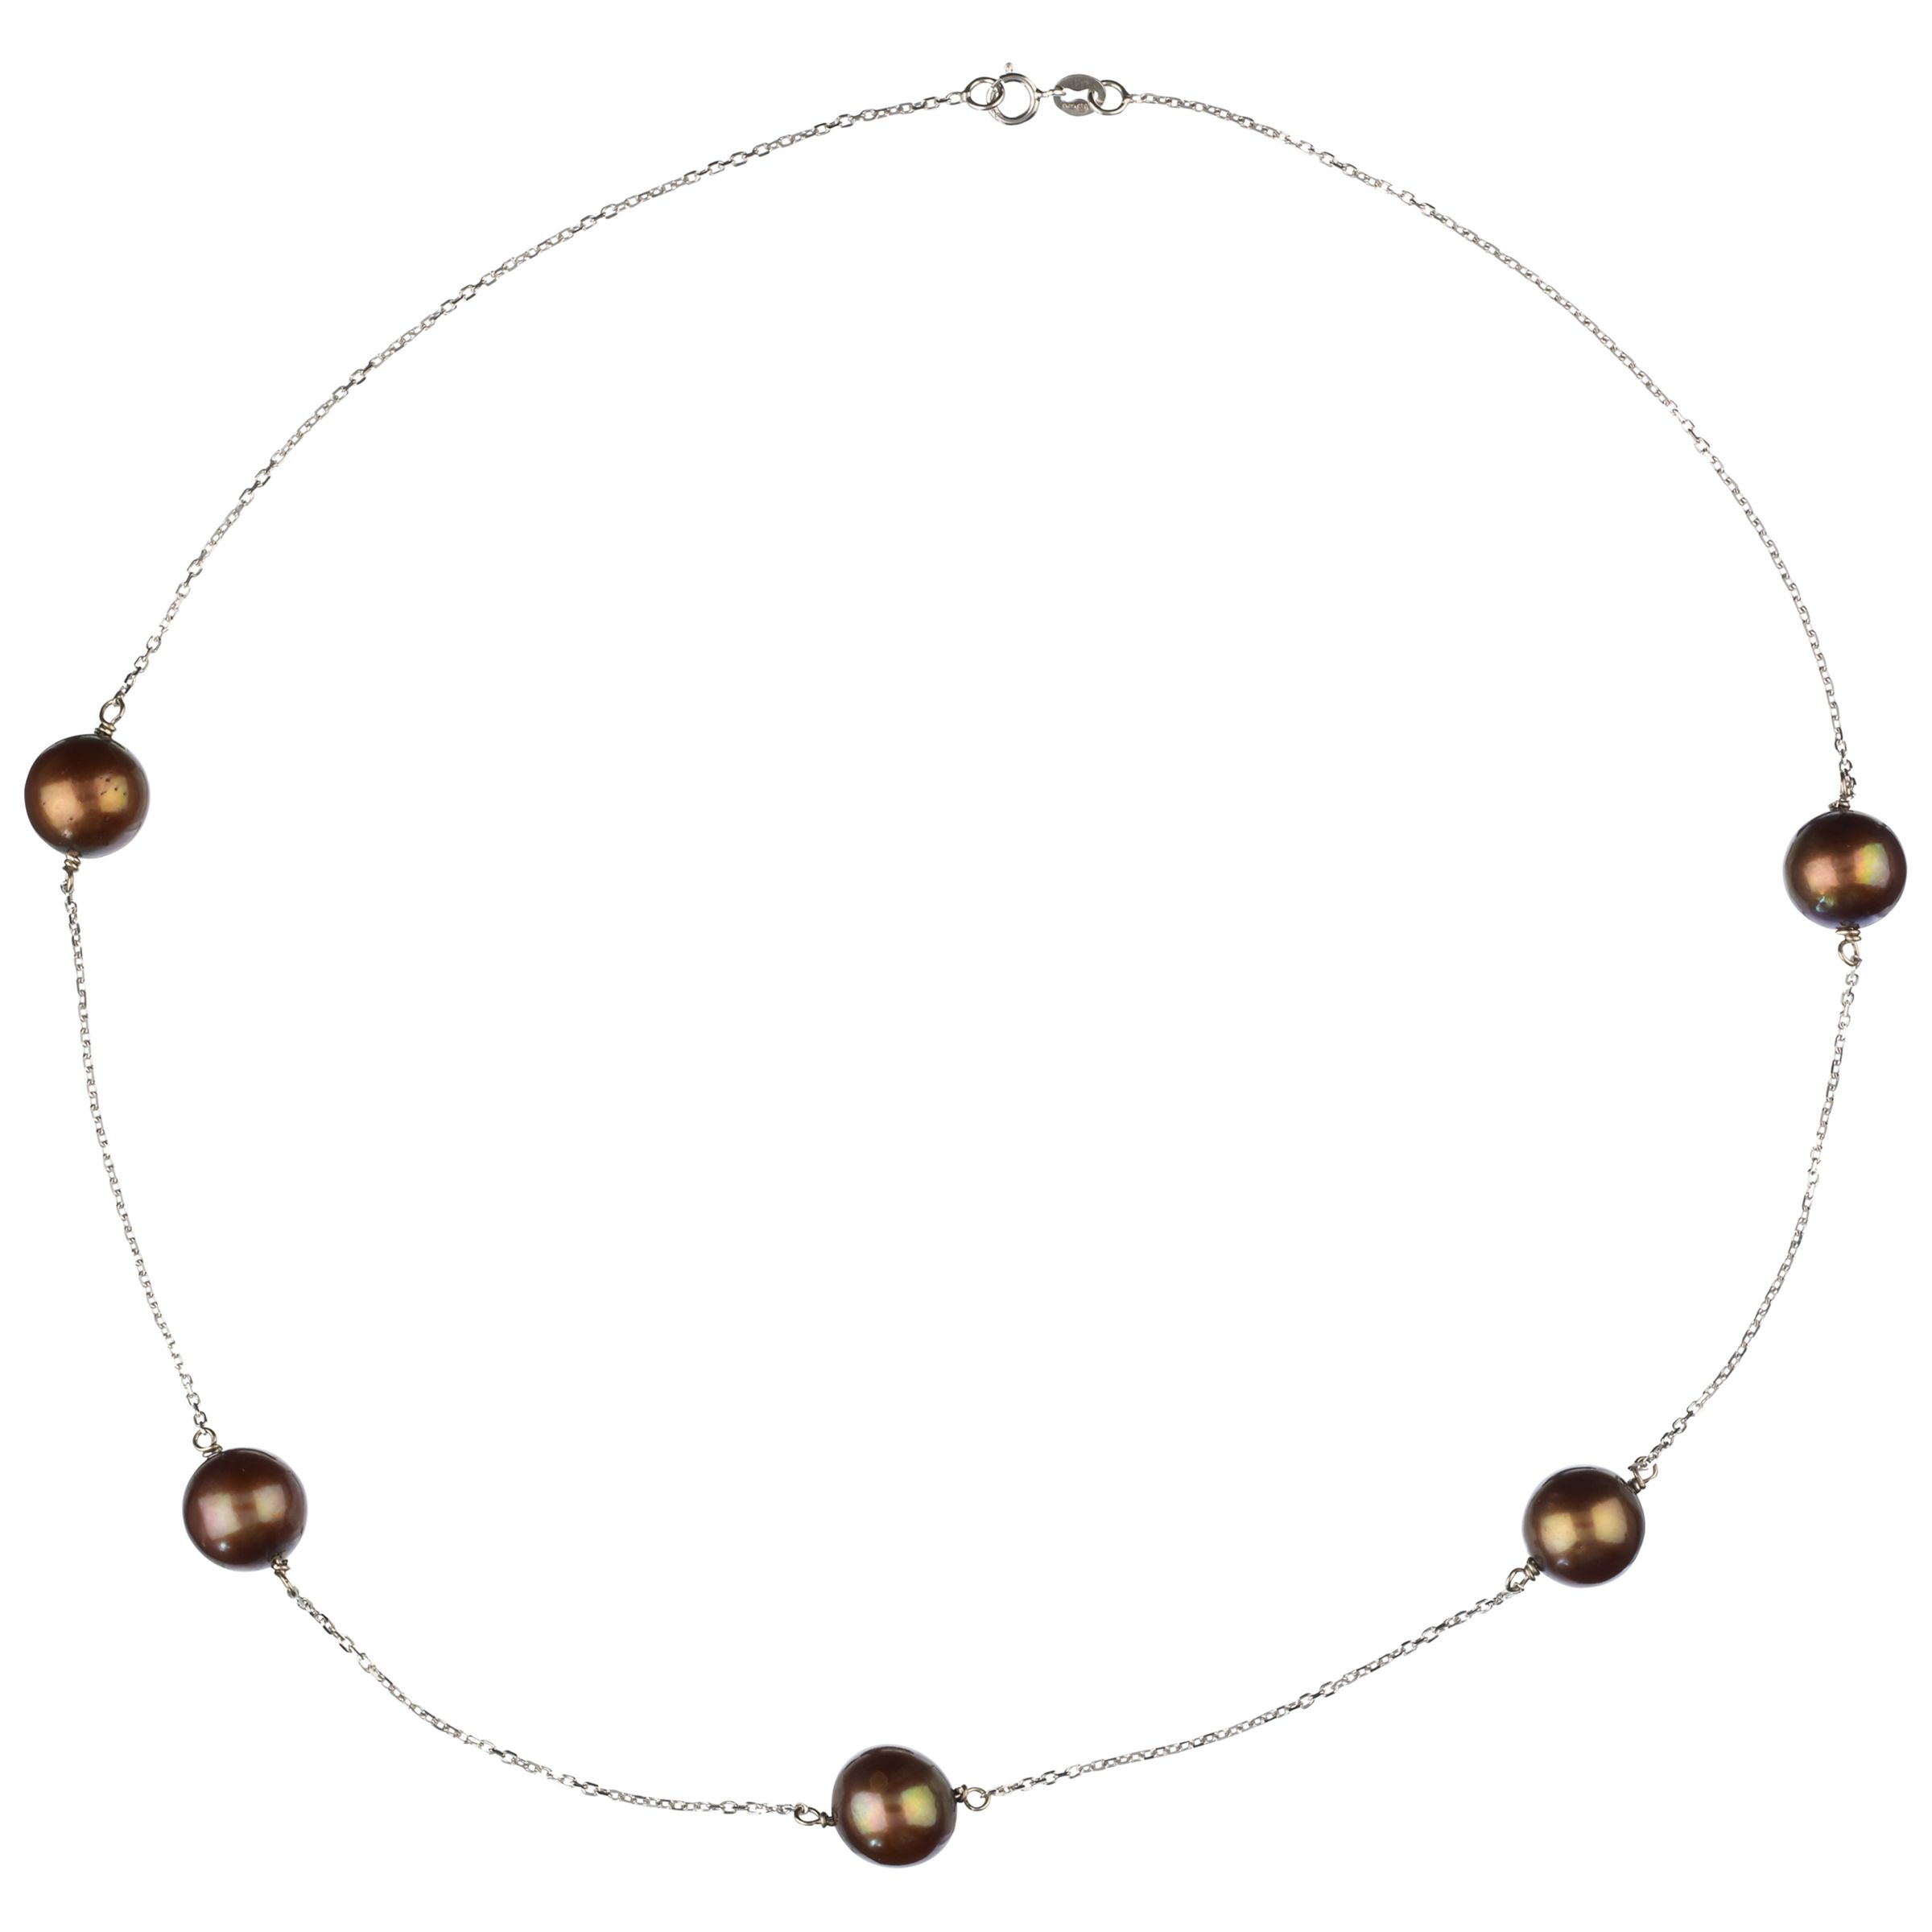 Elizabeth Freshwater Pearl Necklace, Chocolate